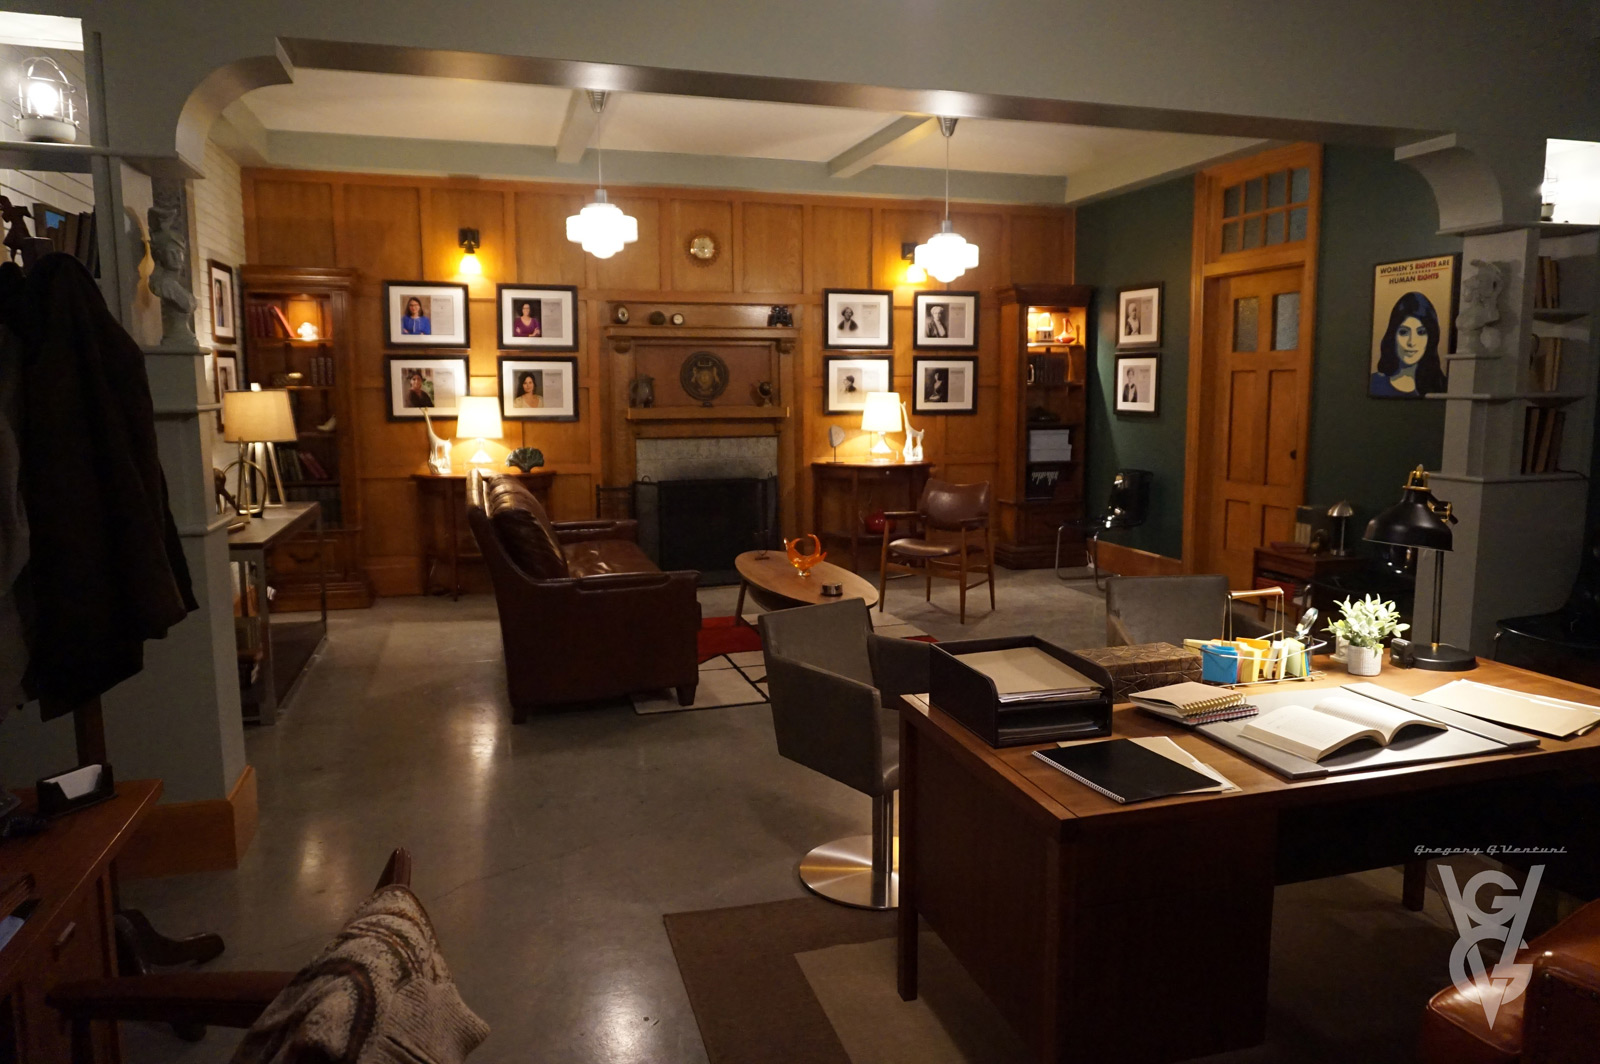 CHARMED: S1 - HARRY'S UNIVERSITY OFFICE - SET PHOTO